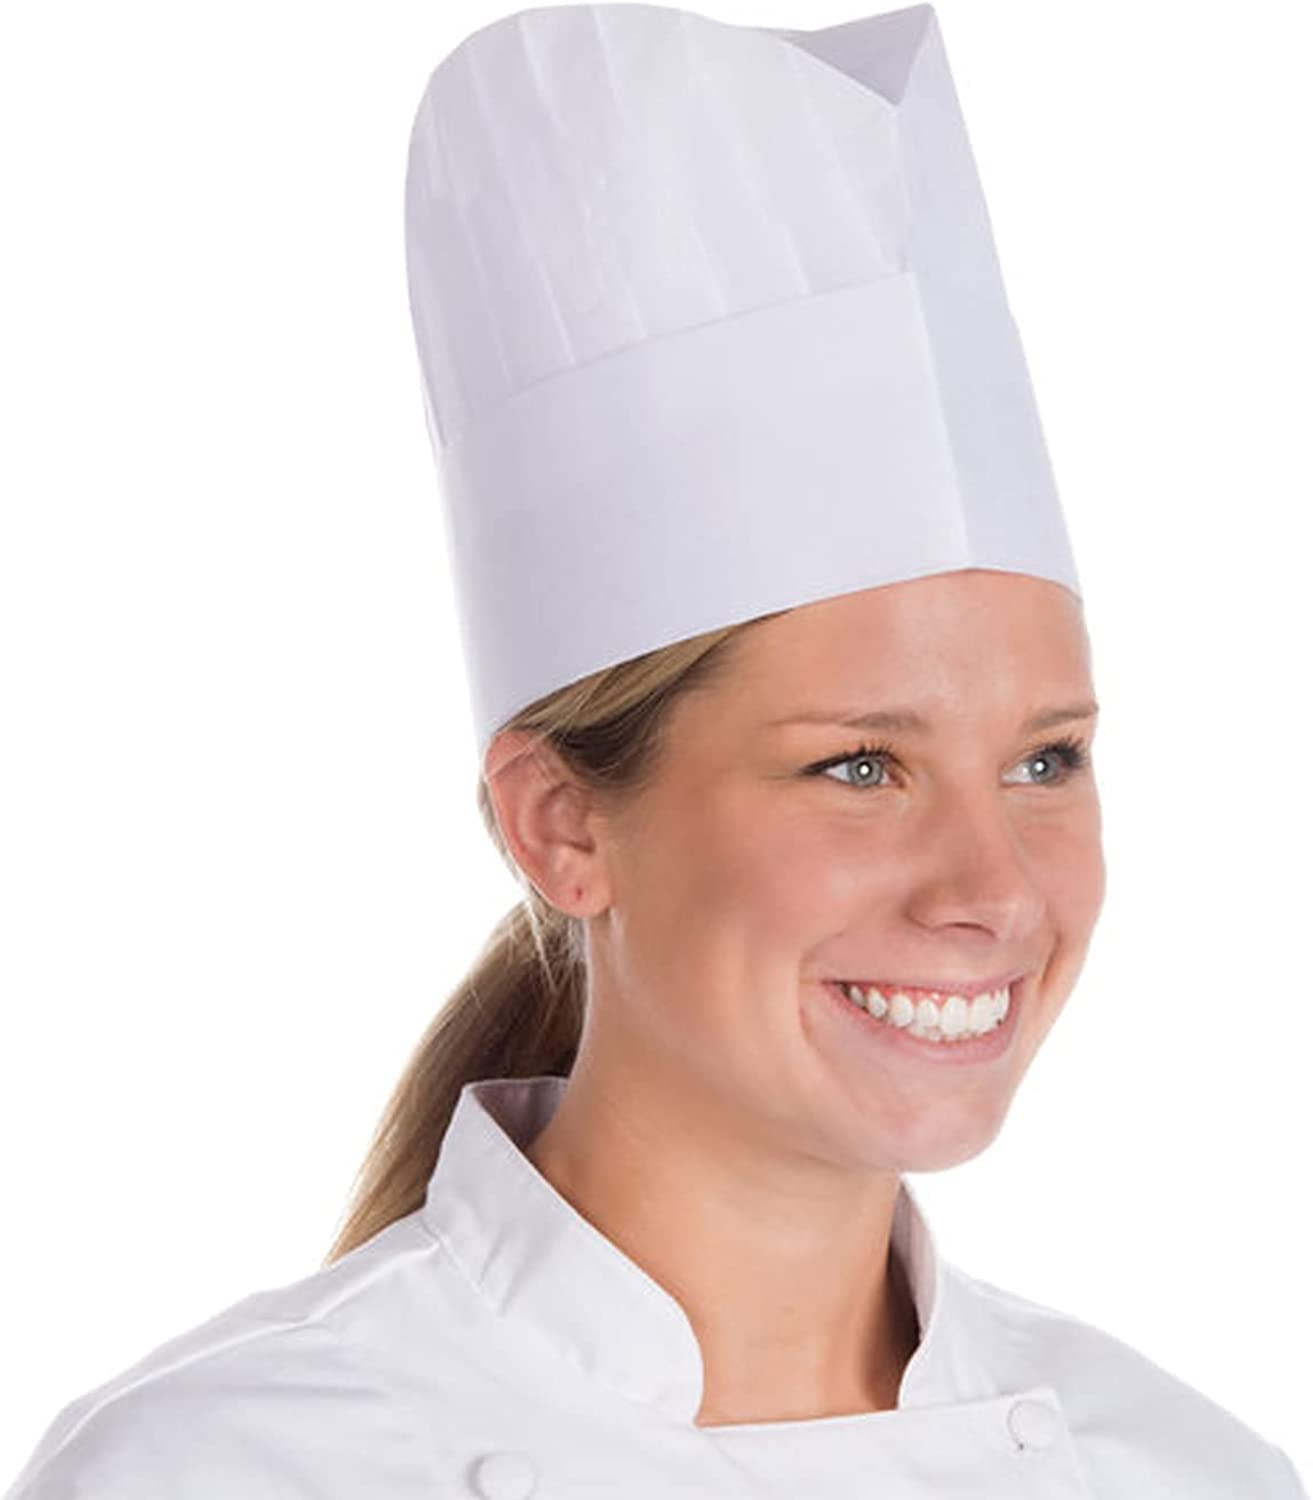 White Chef Hats in Bulk. Viscose Hair Covers with Pleats. Head Caps, Le Toque.